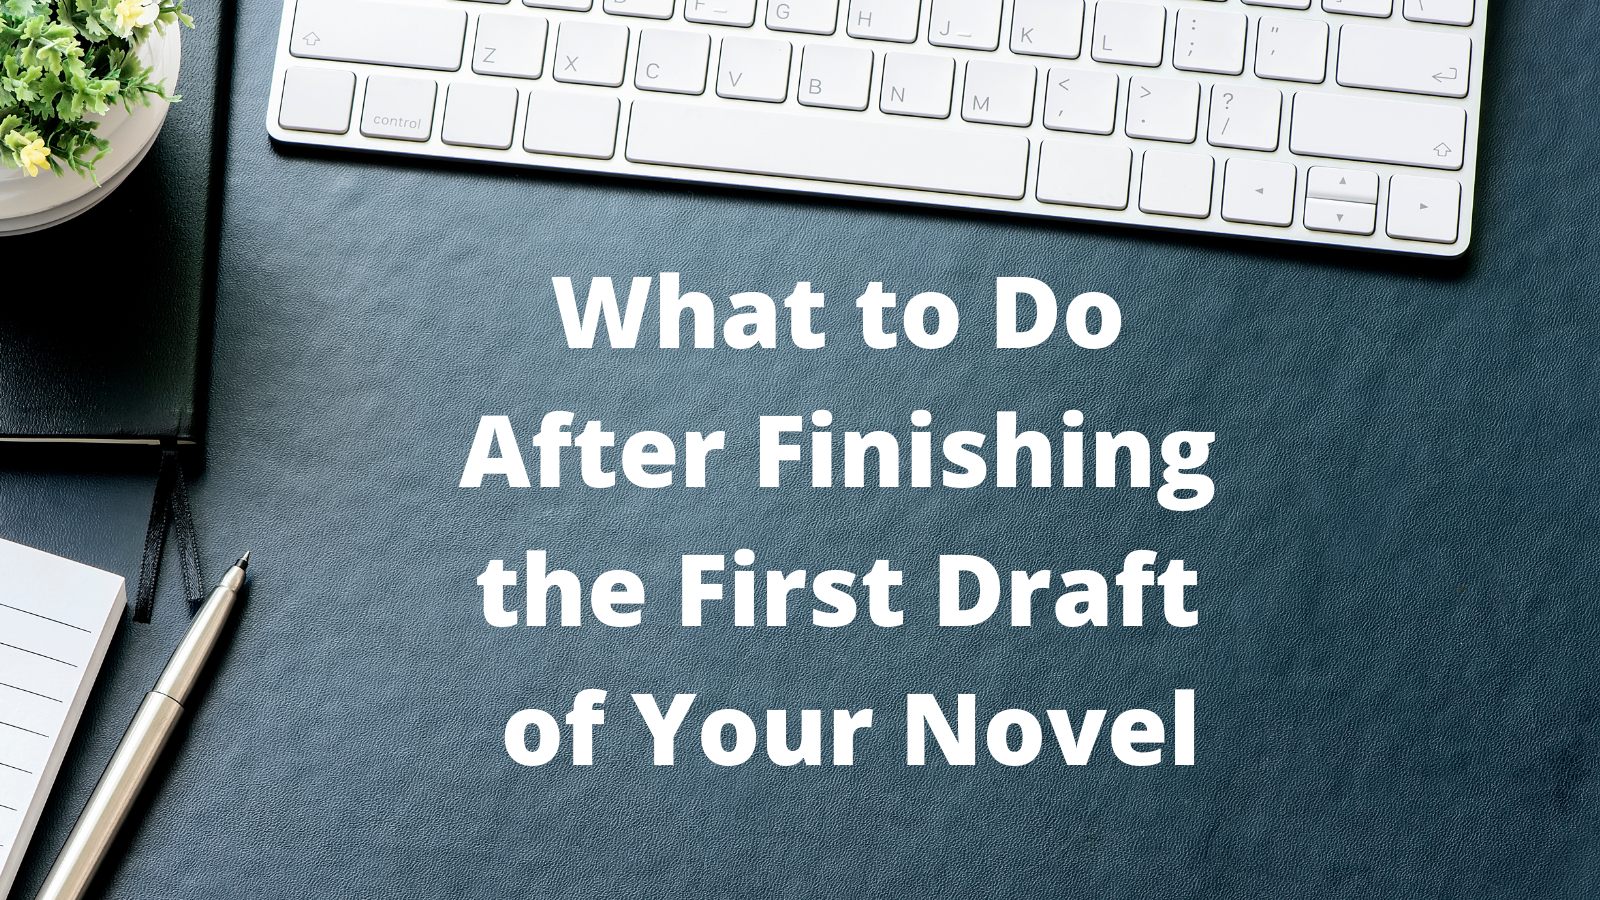 What to do After Finishing the First Draft of your Novel